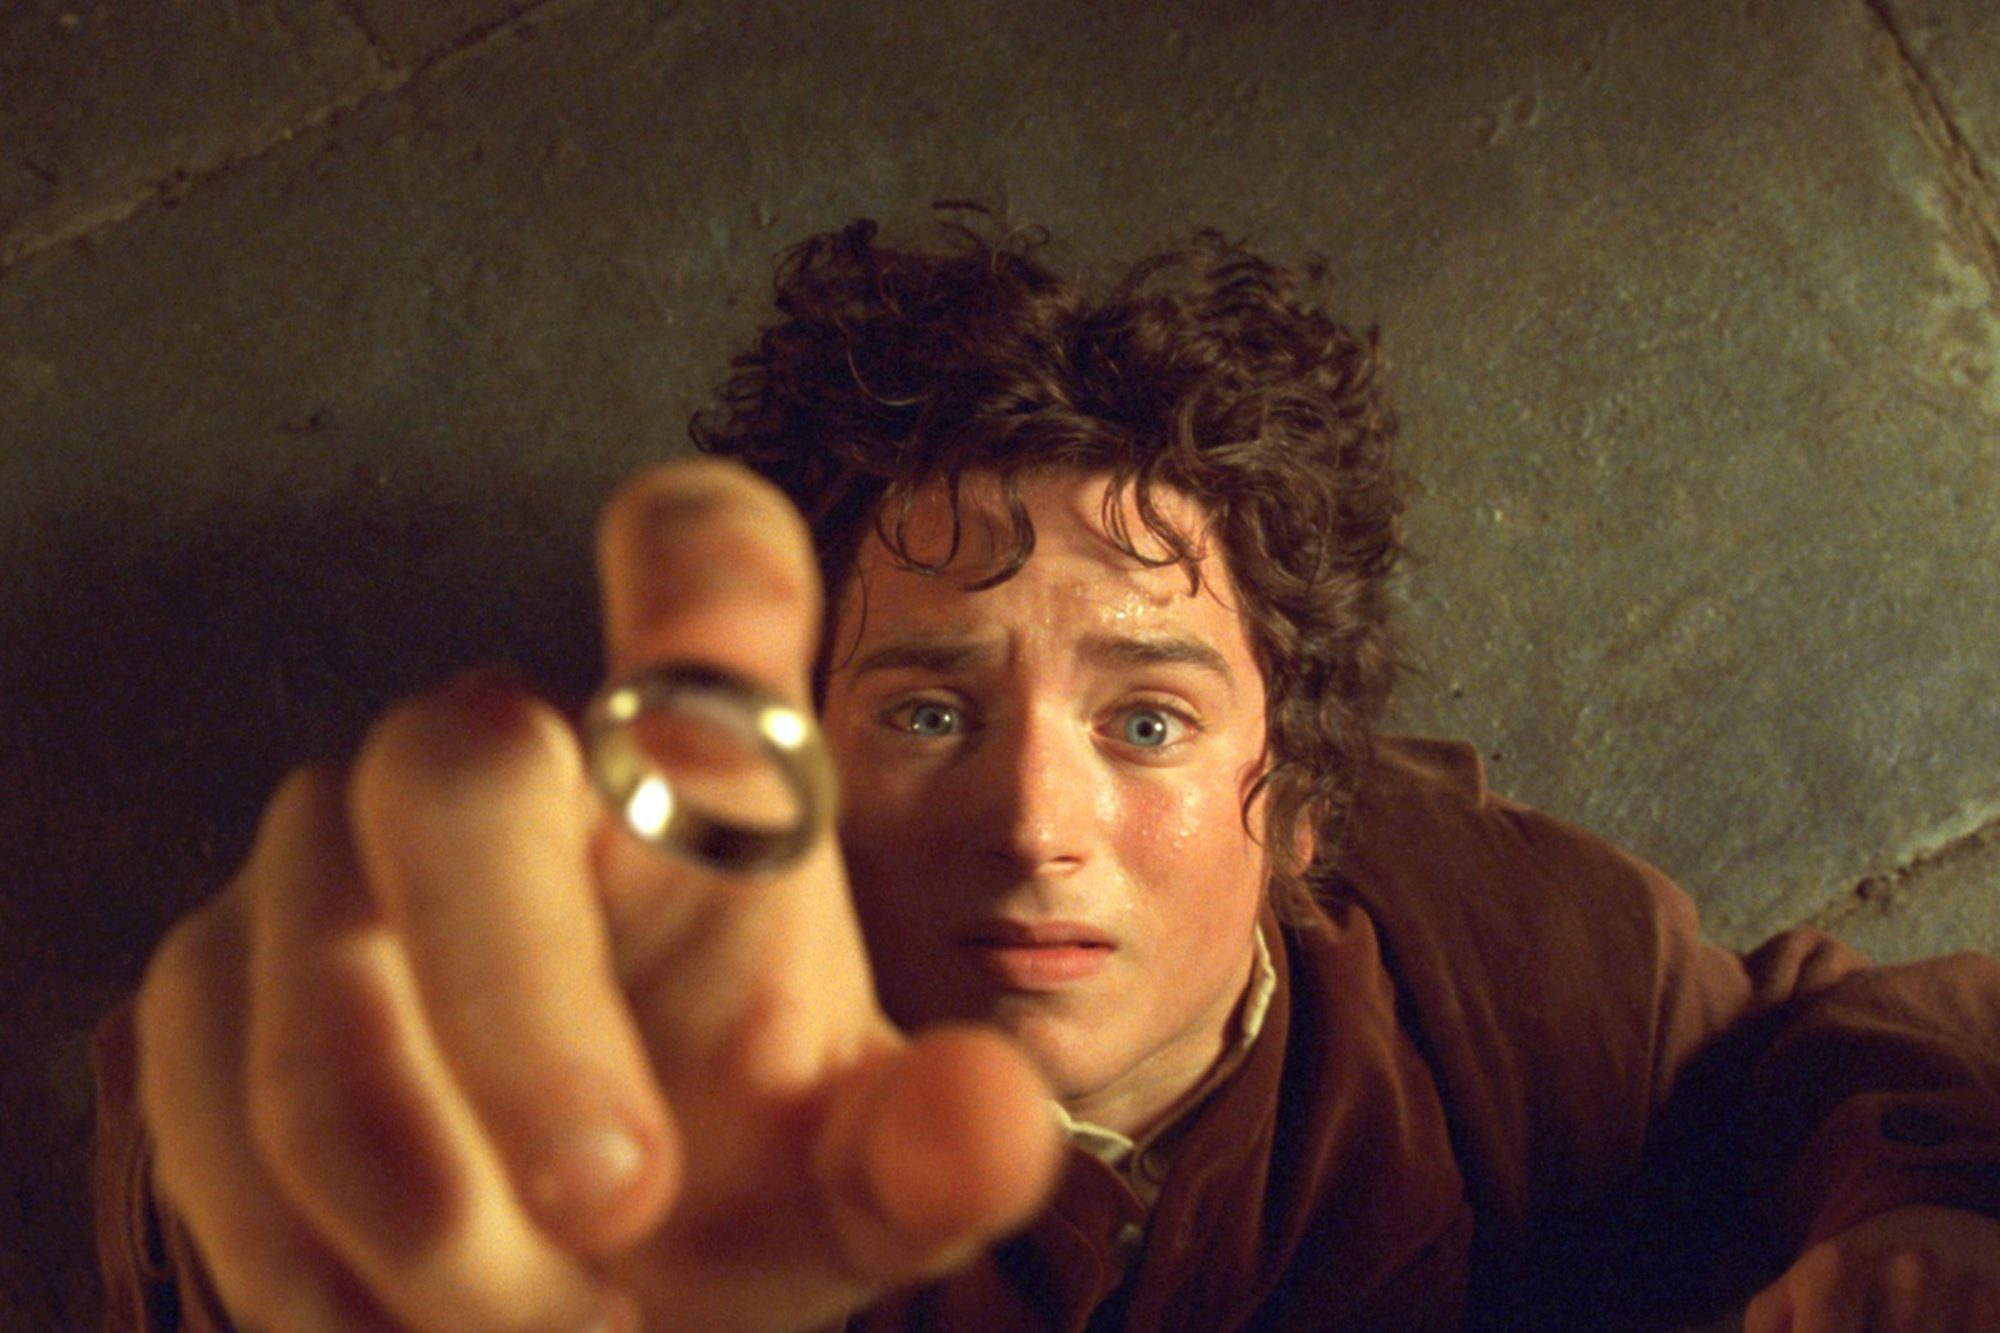 Lord of the Rings: The Fellowship of the Ring (2001)Elijah Wood